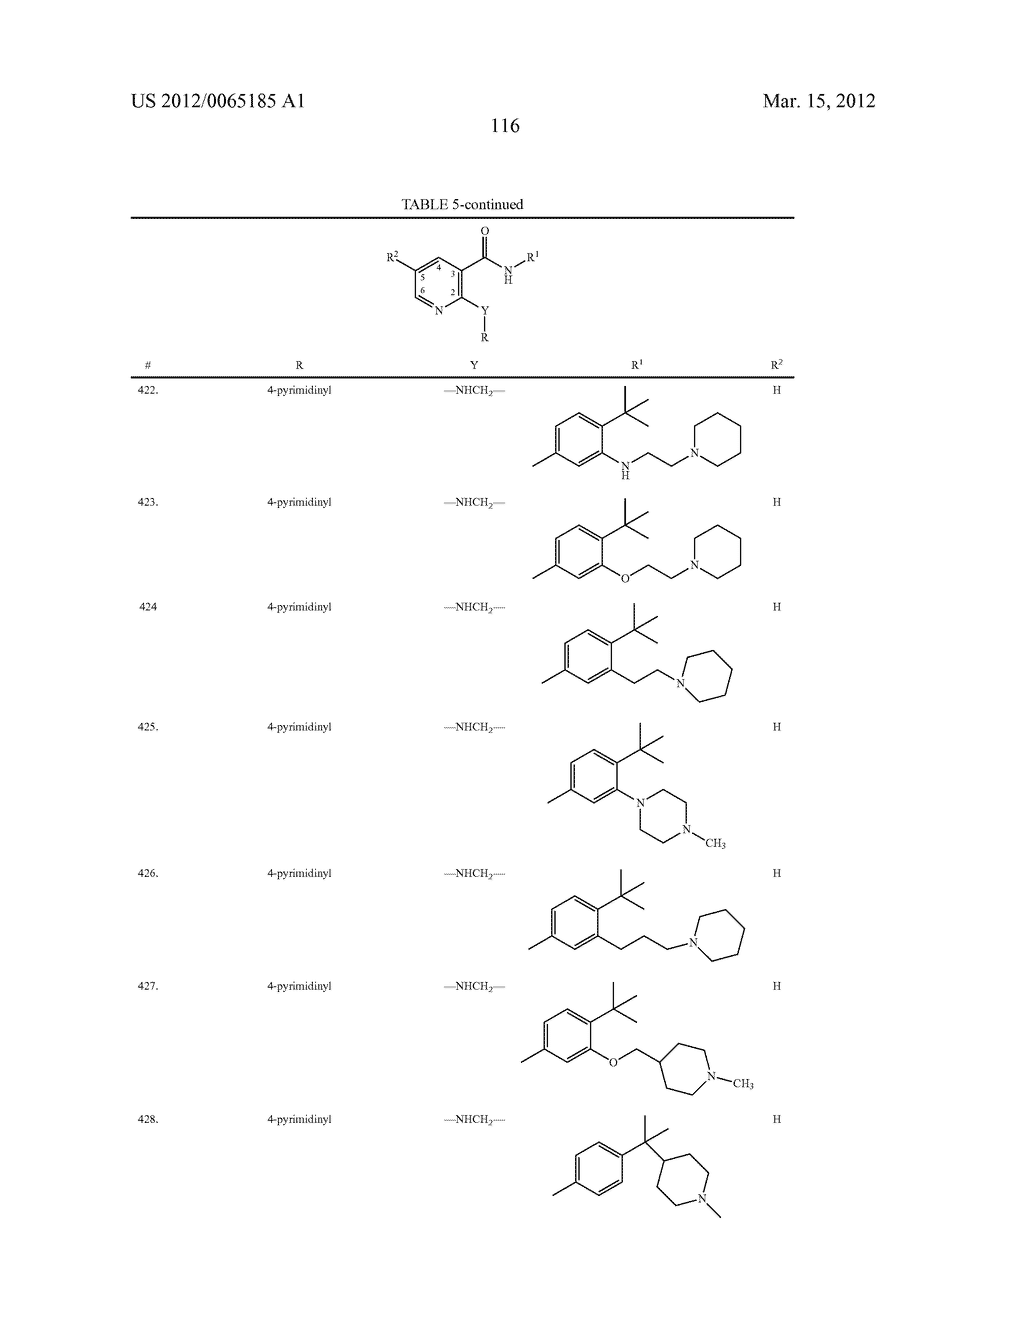 SUBSTITUTED ALKYLAMINE DERIVATIVES AND METHODS OF USE - diagram, schematic, and image 117